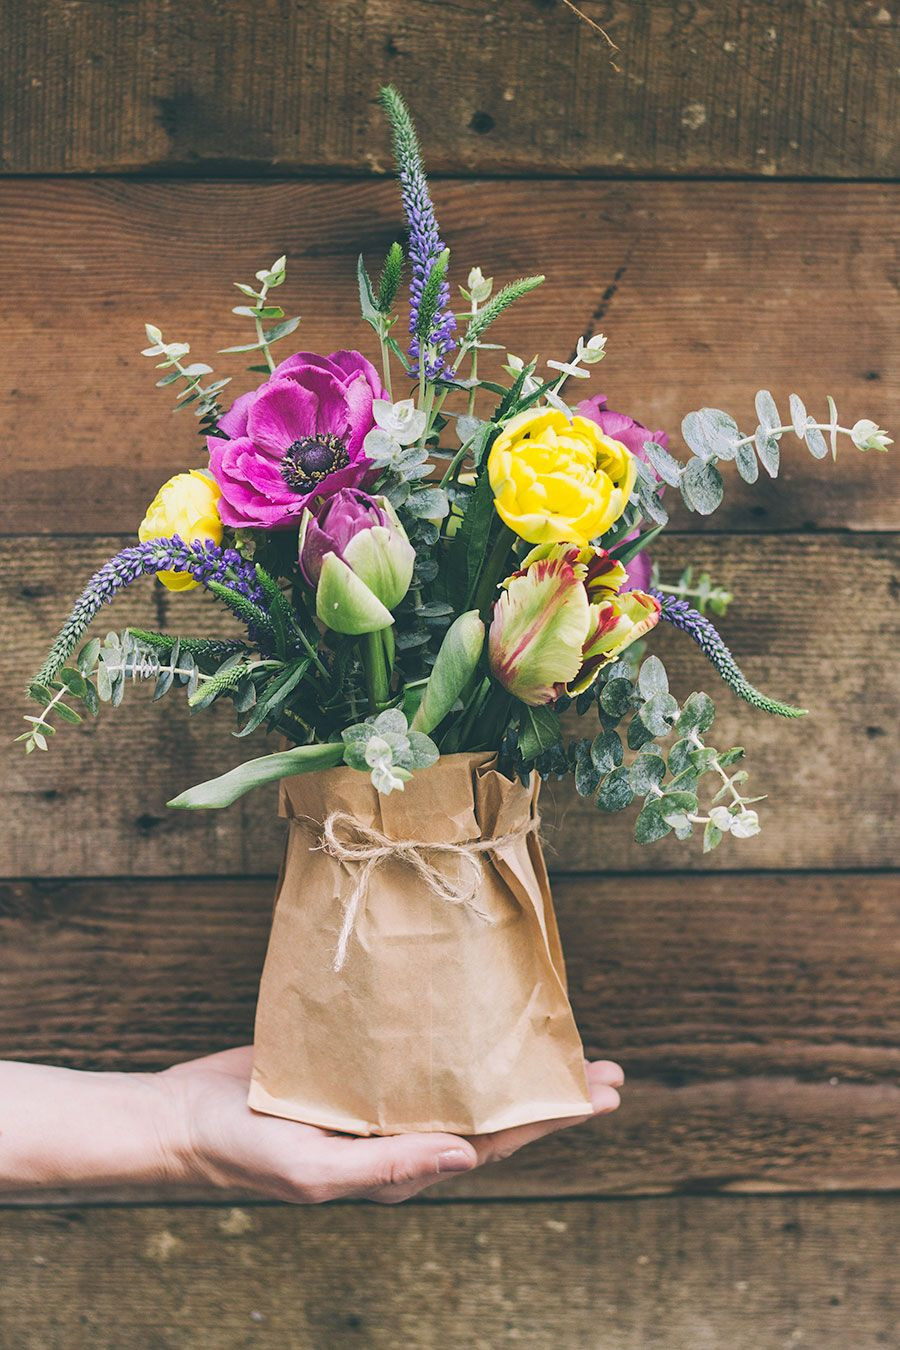 Lifestyle Puzzle Vase Of Pop Beautiful Flowers In A Paper Bag and Tie with A Small Piece Of In Pop Beautiful Flowers In A Paper Bag and Tie with A Small Piece Of String for A Vintage touch